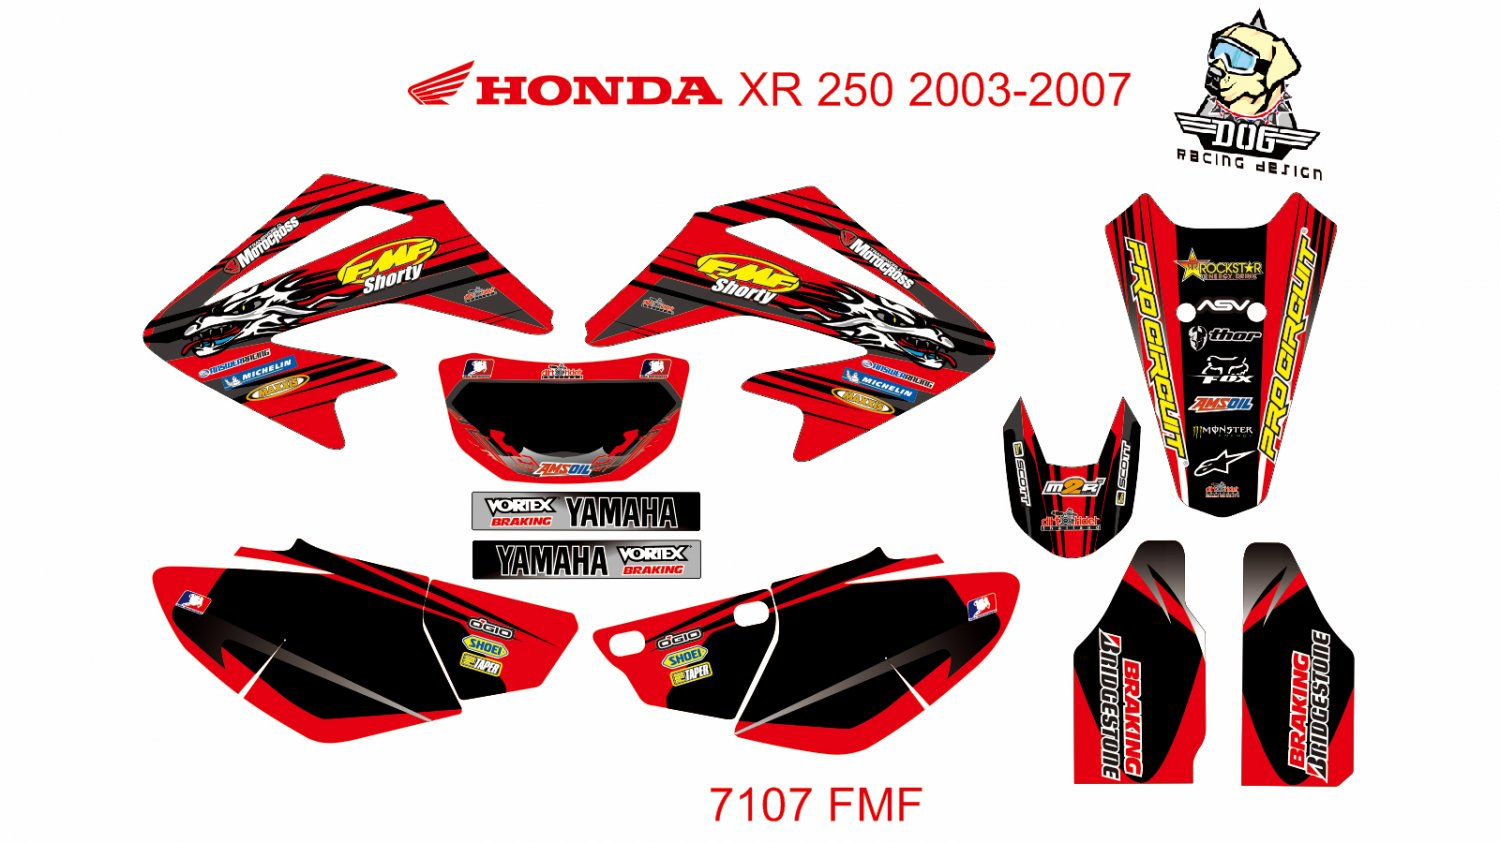 HONDA XR 250 2003-2007 GRAPHIC DECAL KIT CODE.7107